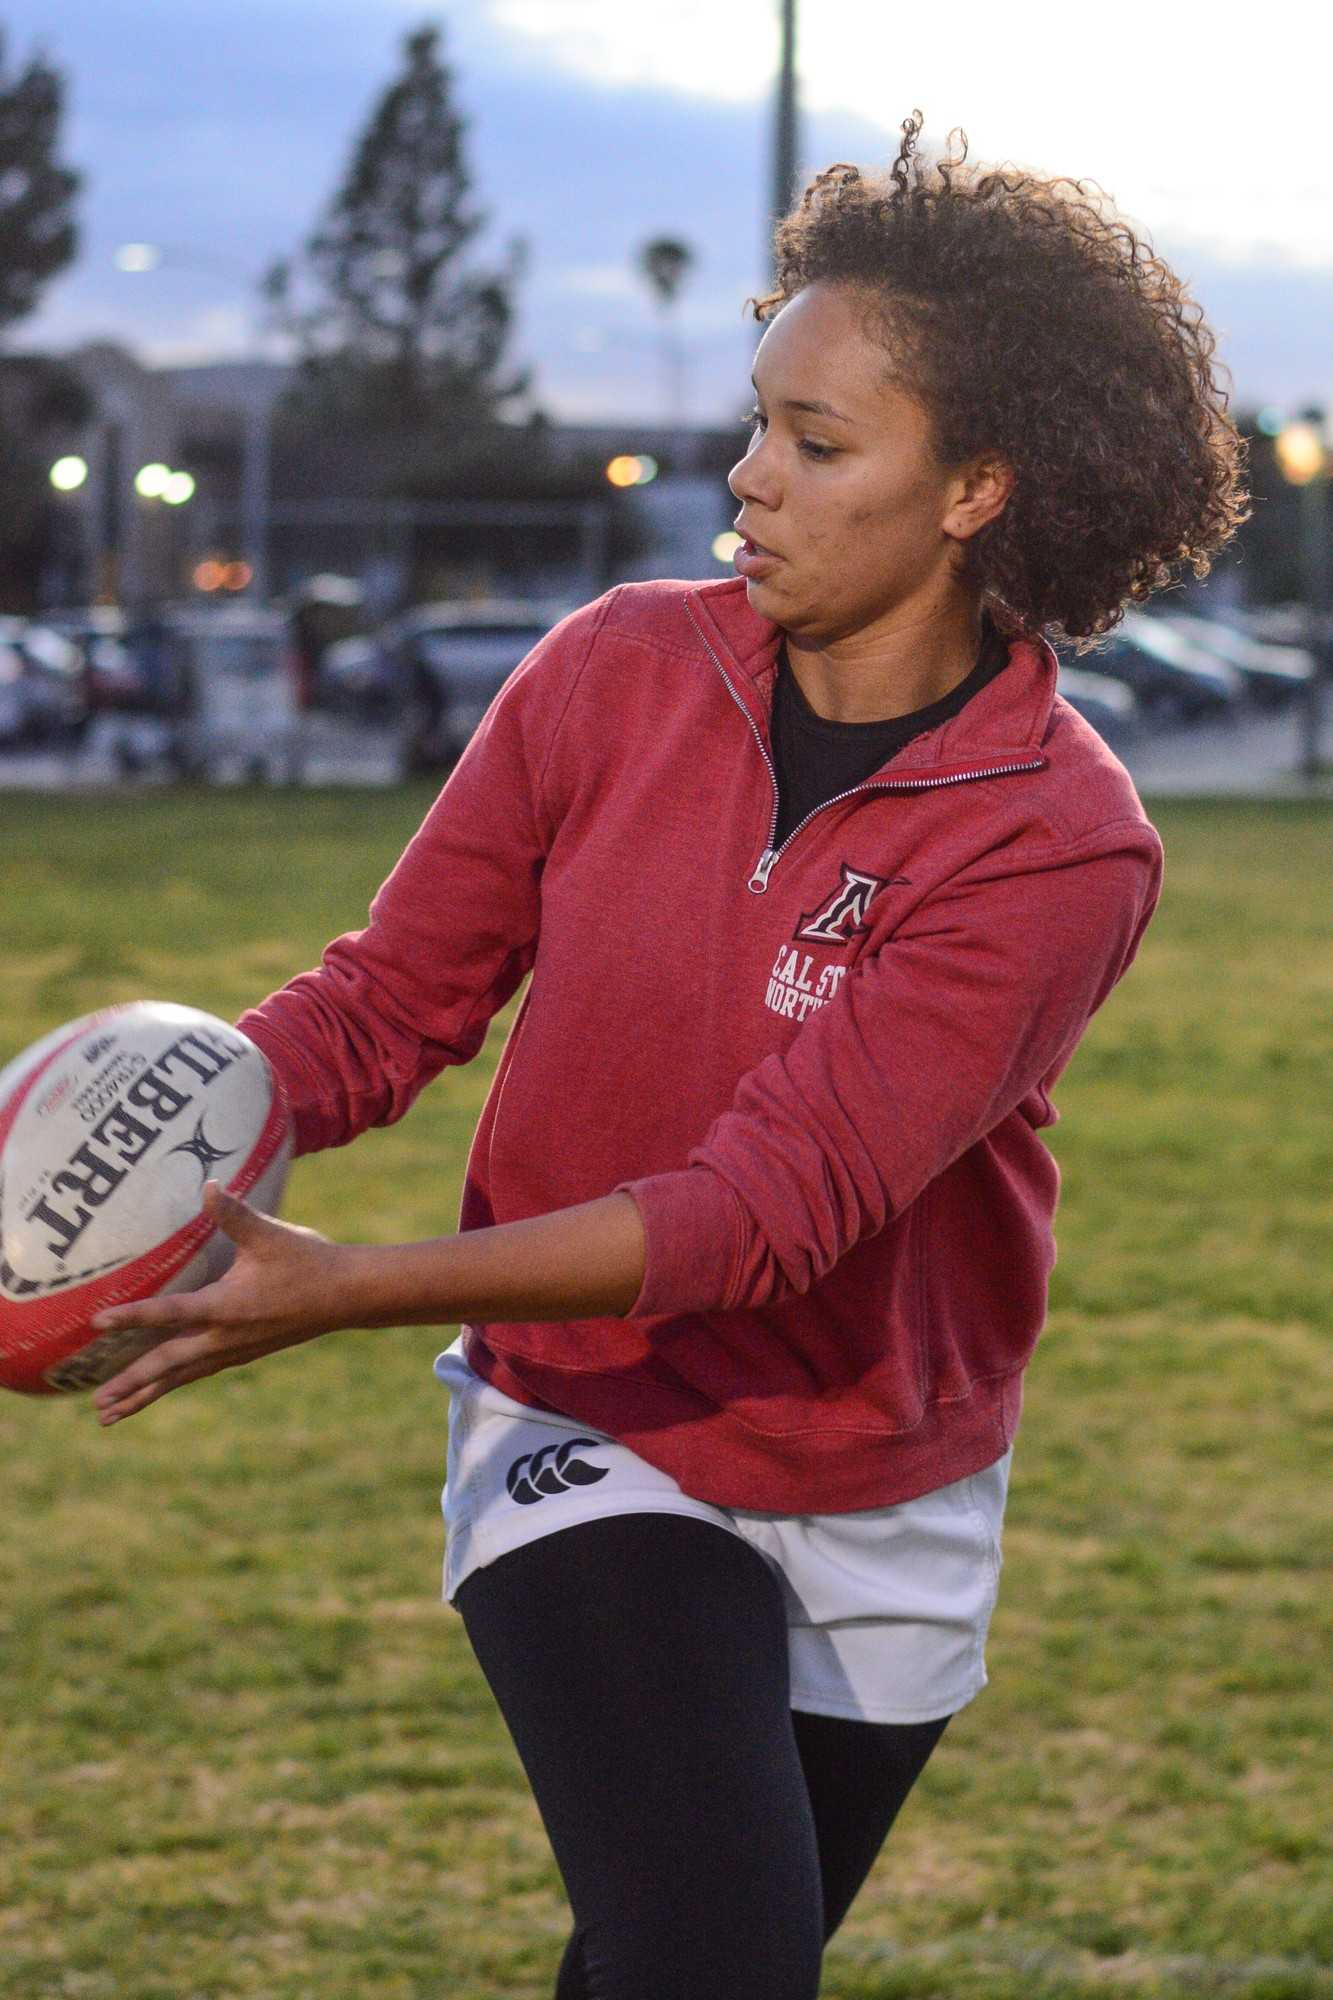 womans rugby player in action